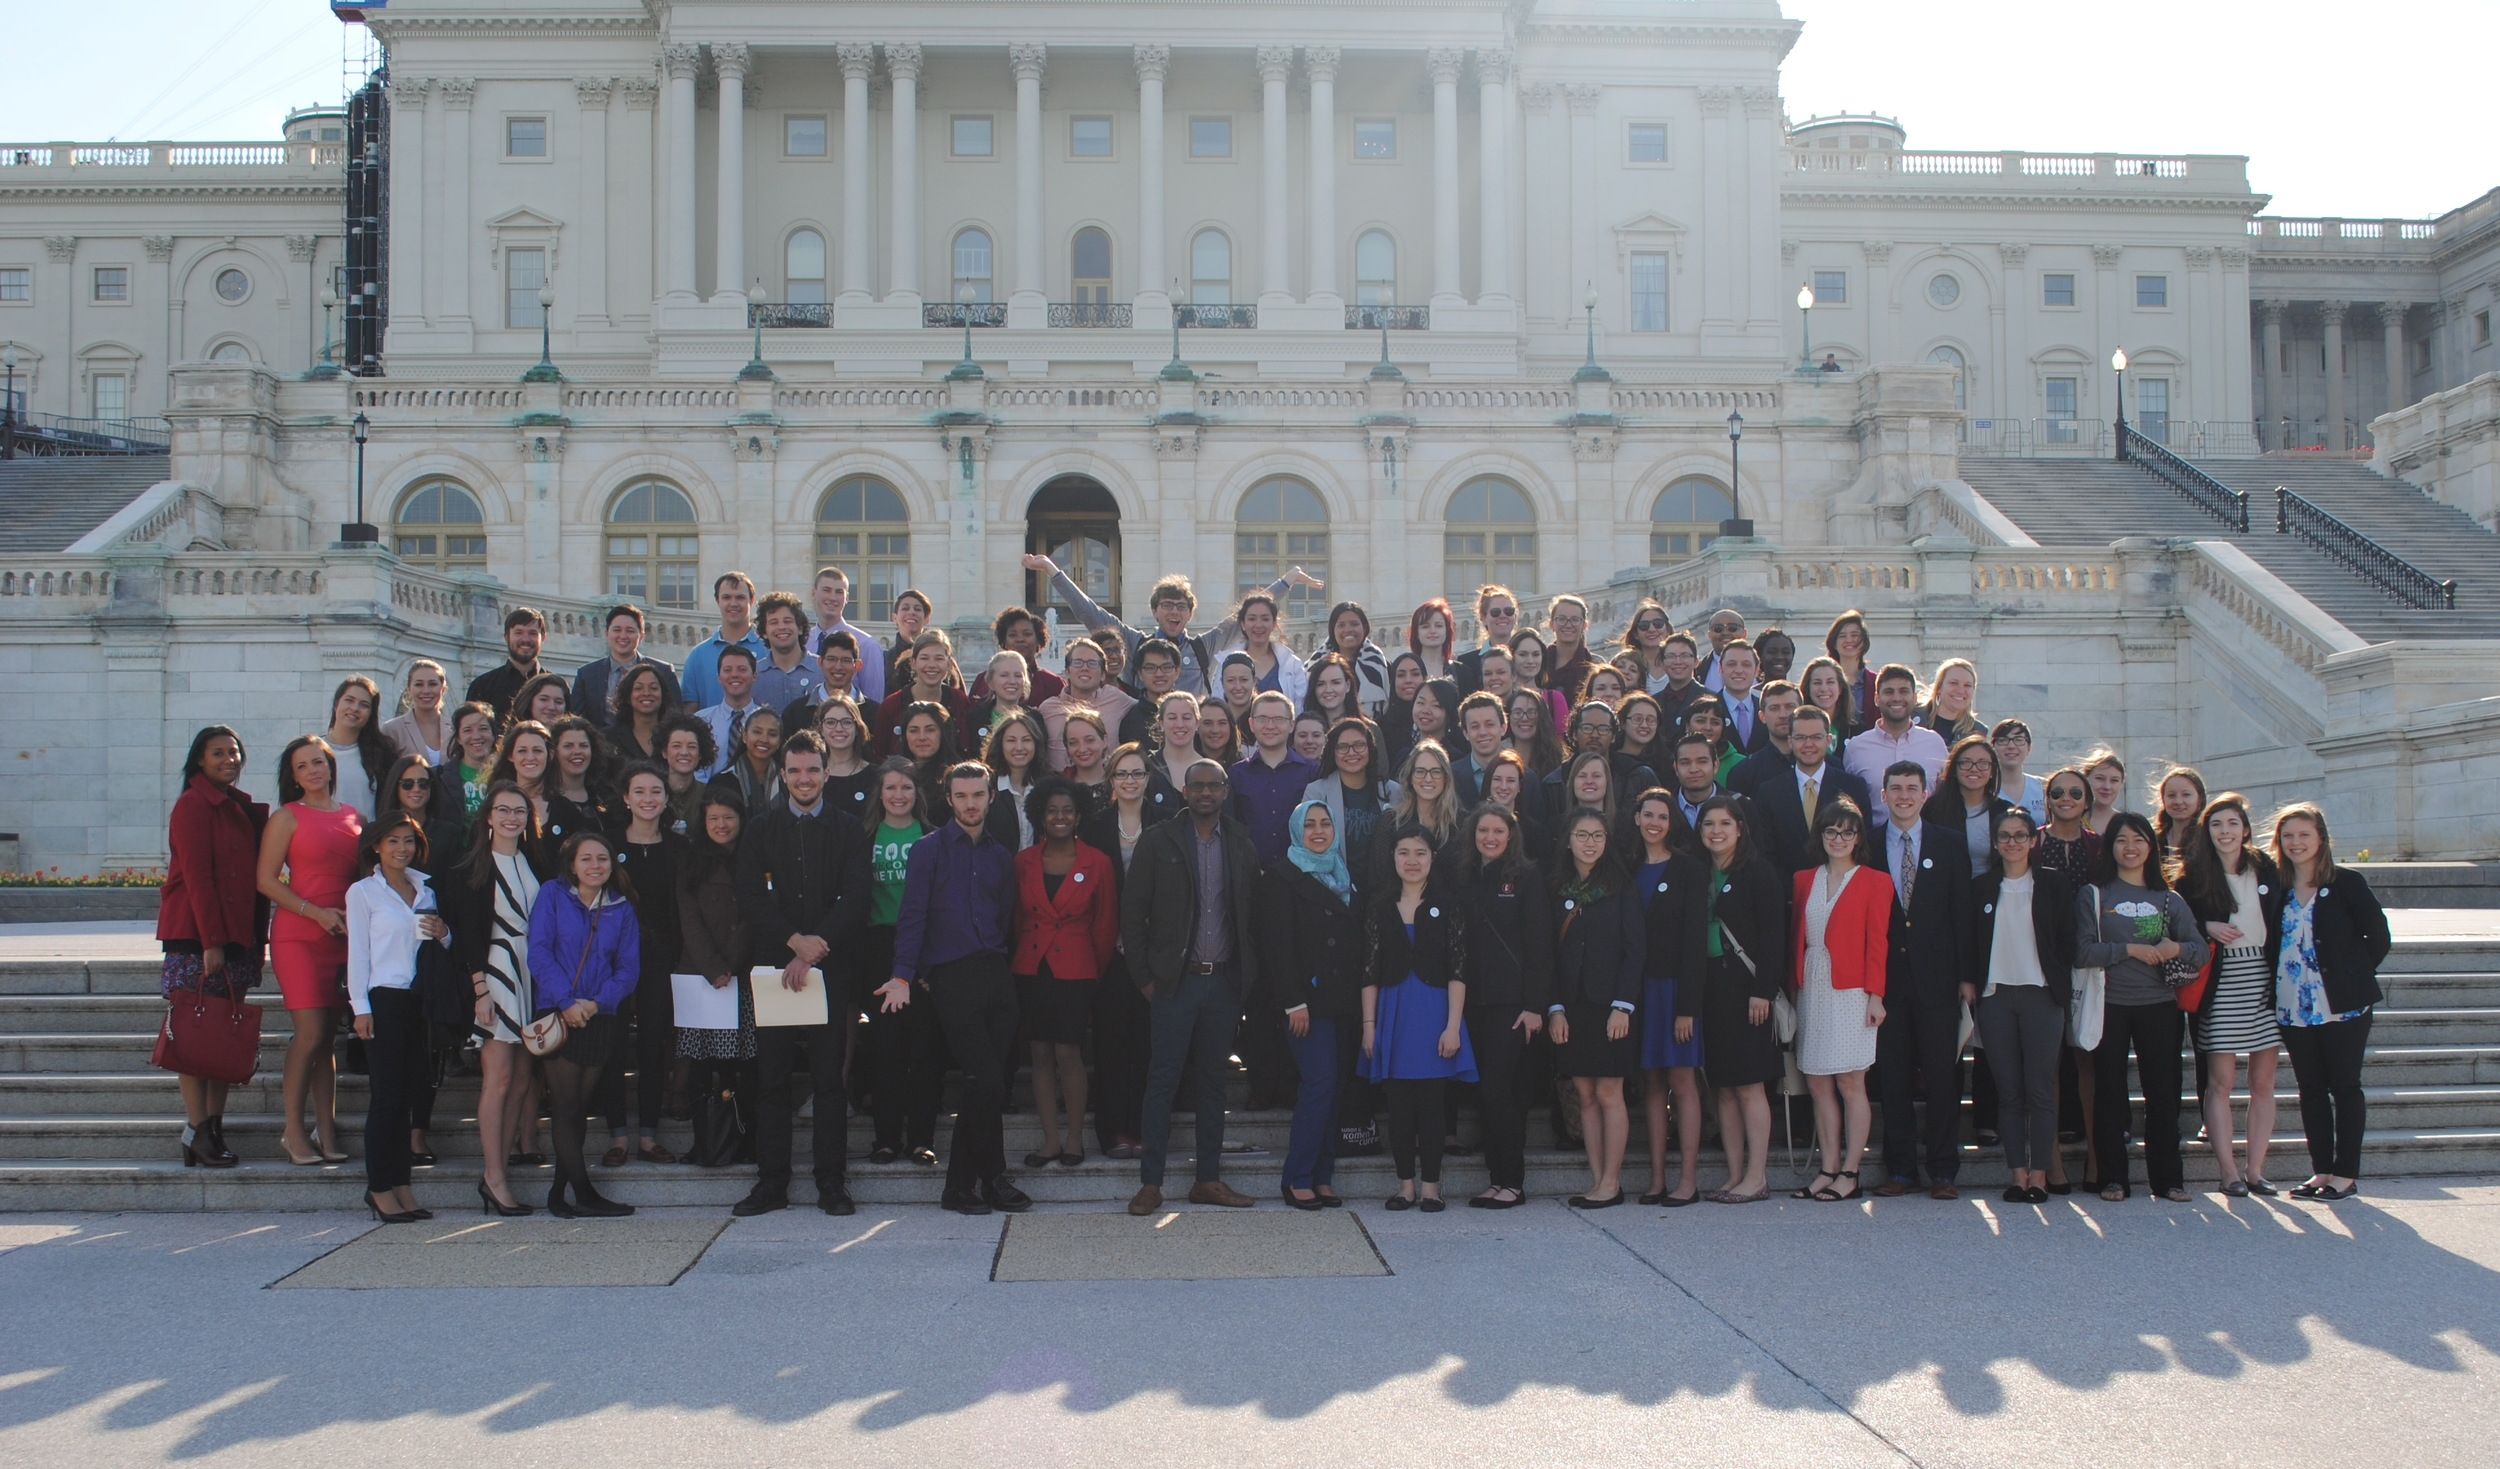 FRNds on Capitol Hill for FRN's first-ever Lobby Day in April 2016.